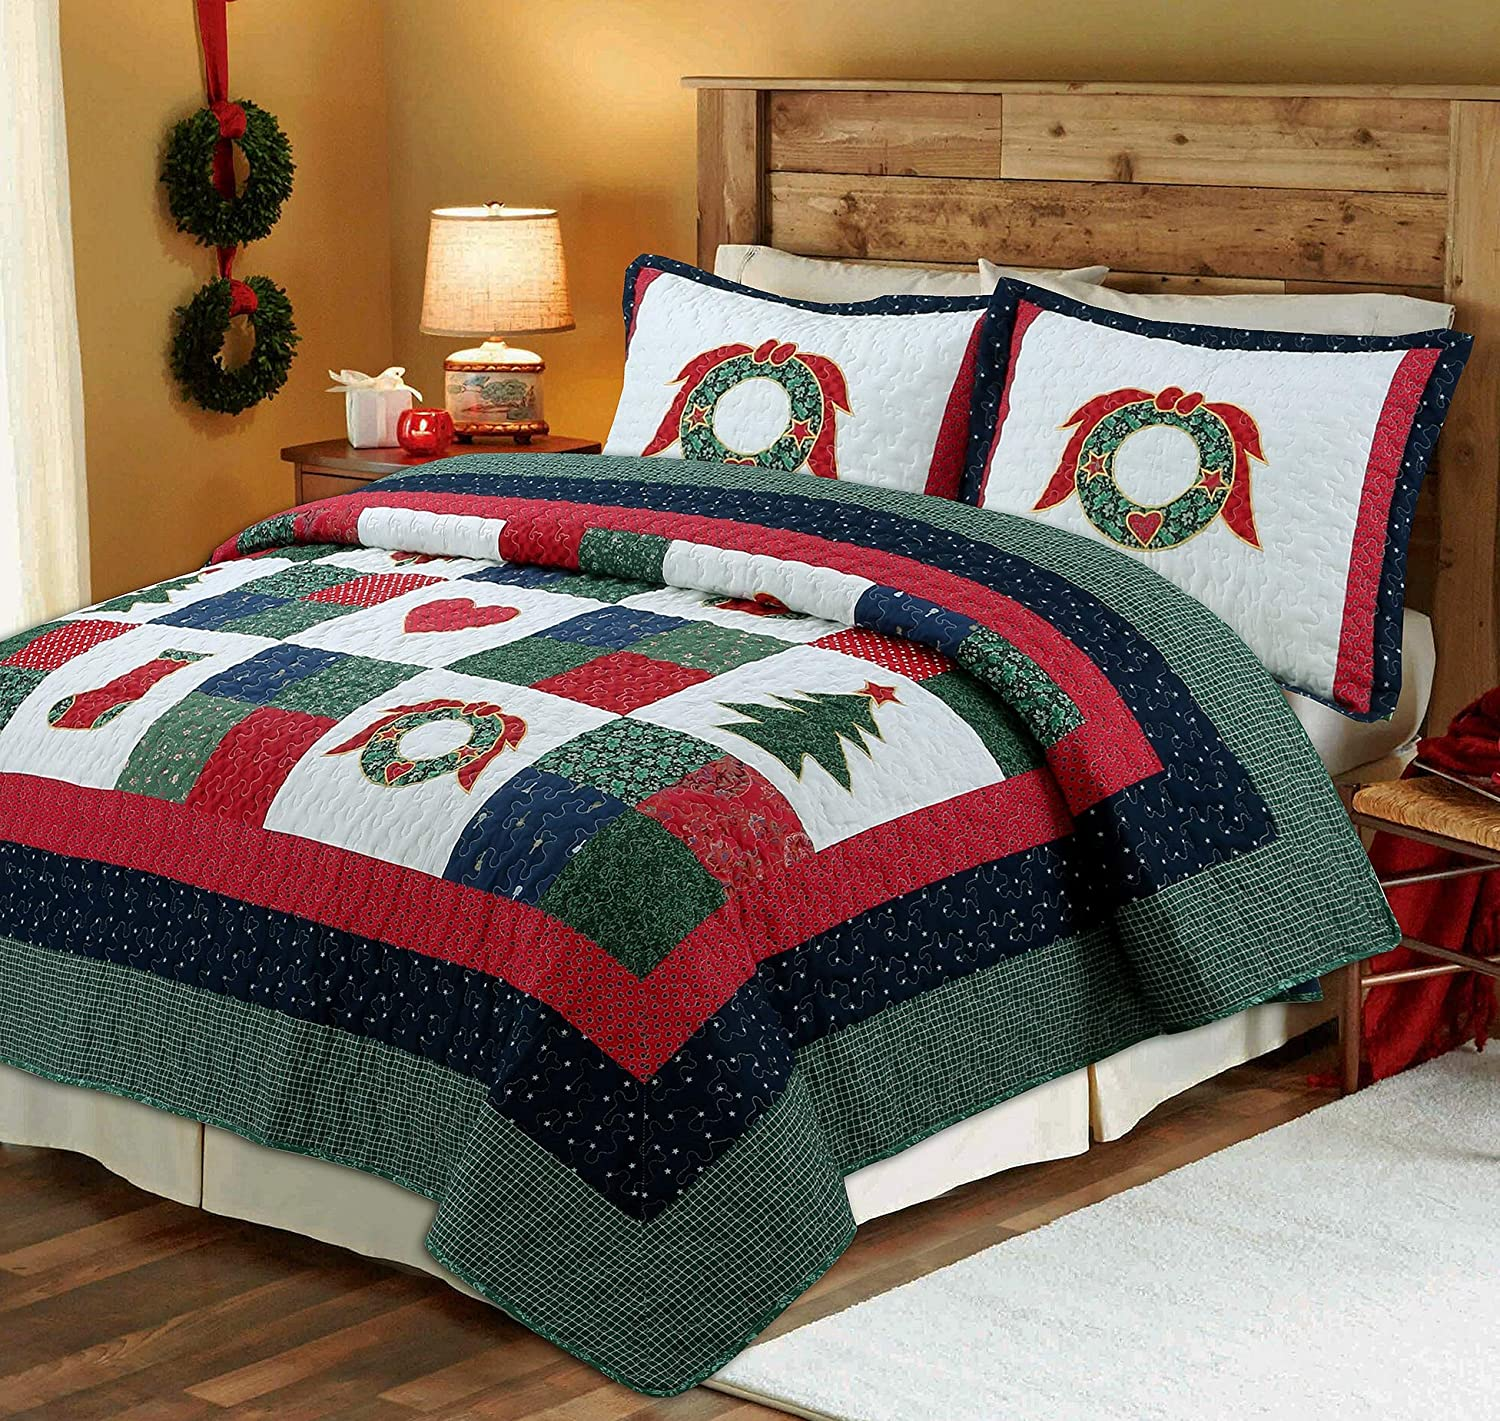 Cozy Line Home Fashions Happy Christmas 3-Piece Bedding Quilt Set with 2 Standard Sham